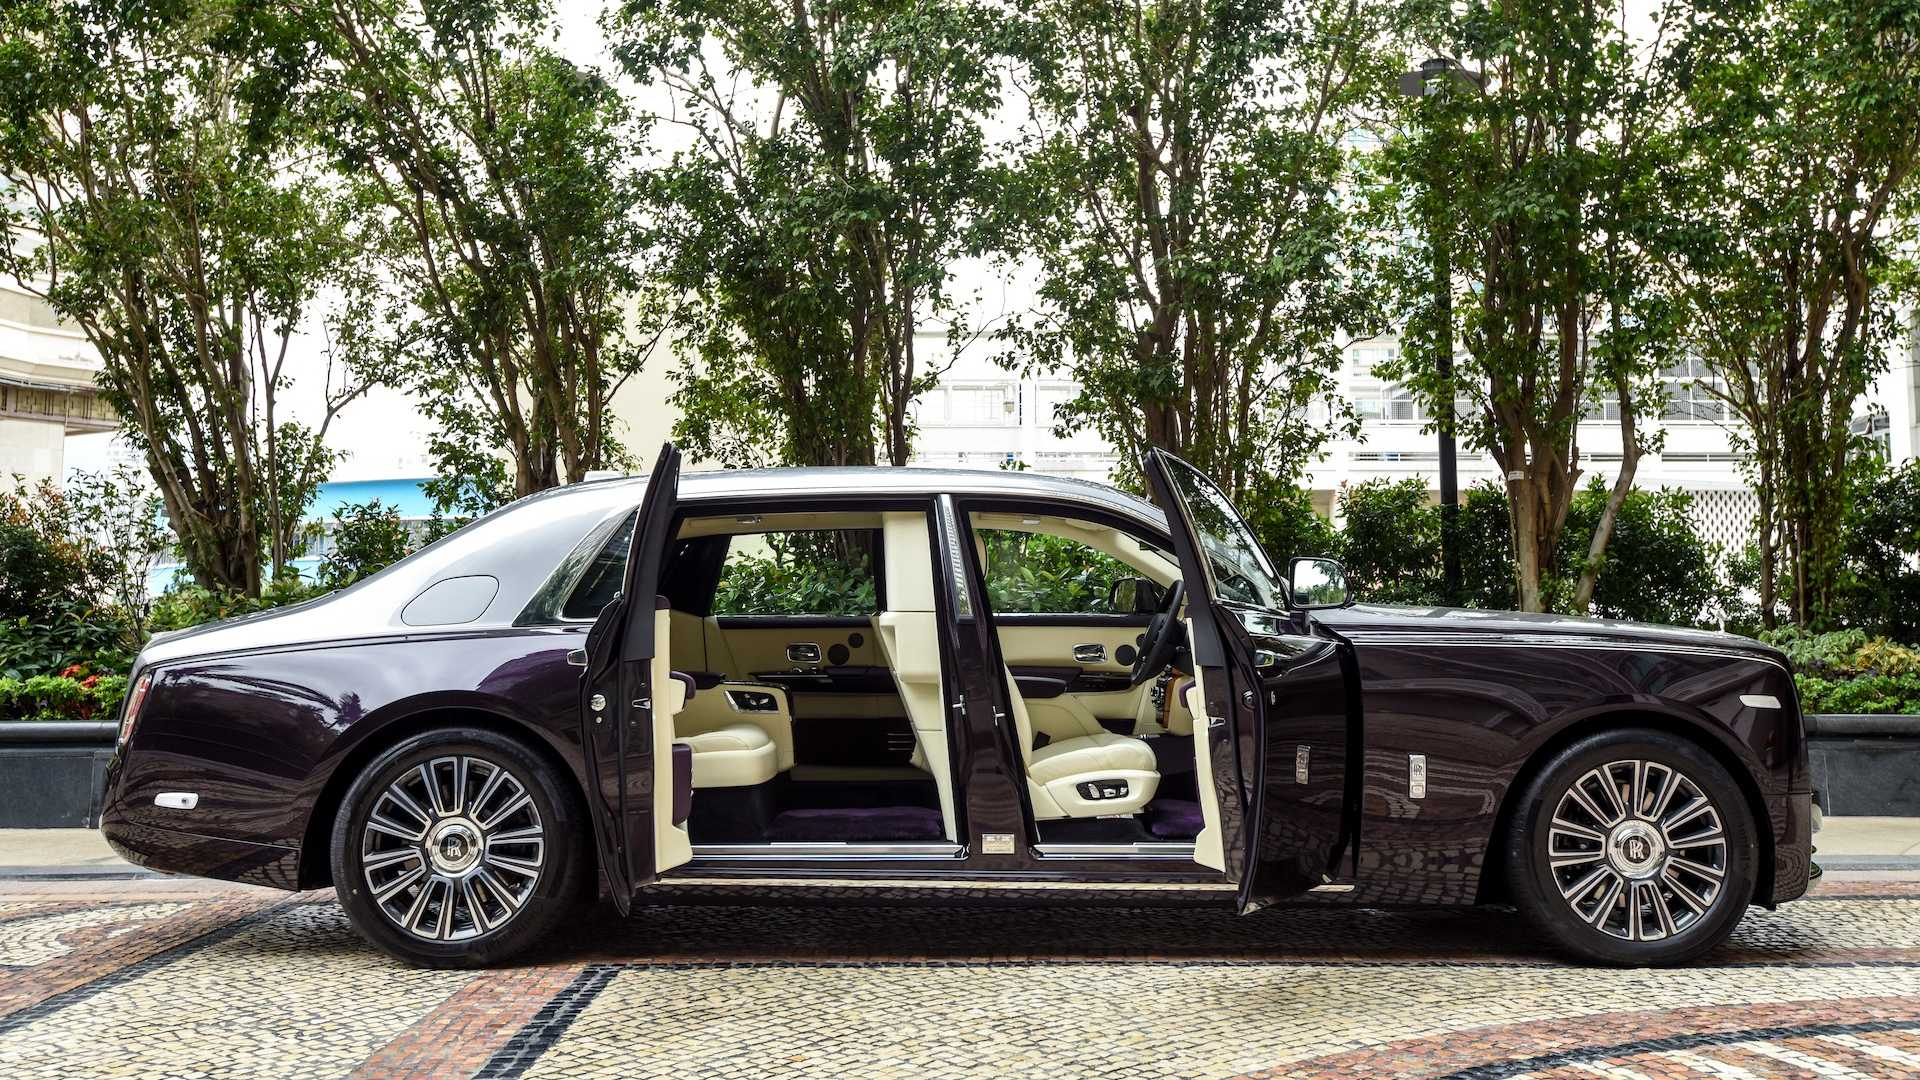 Photo Gallery: Check Out the Privacy Suite on the Rolls-Royce Phantom